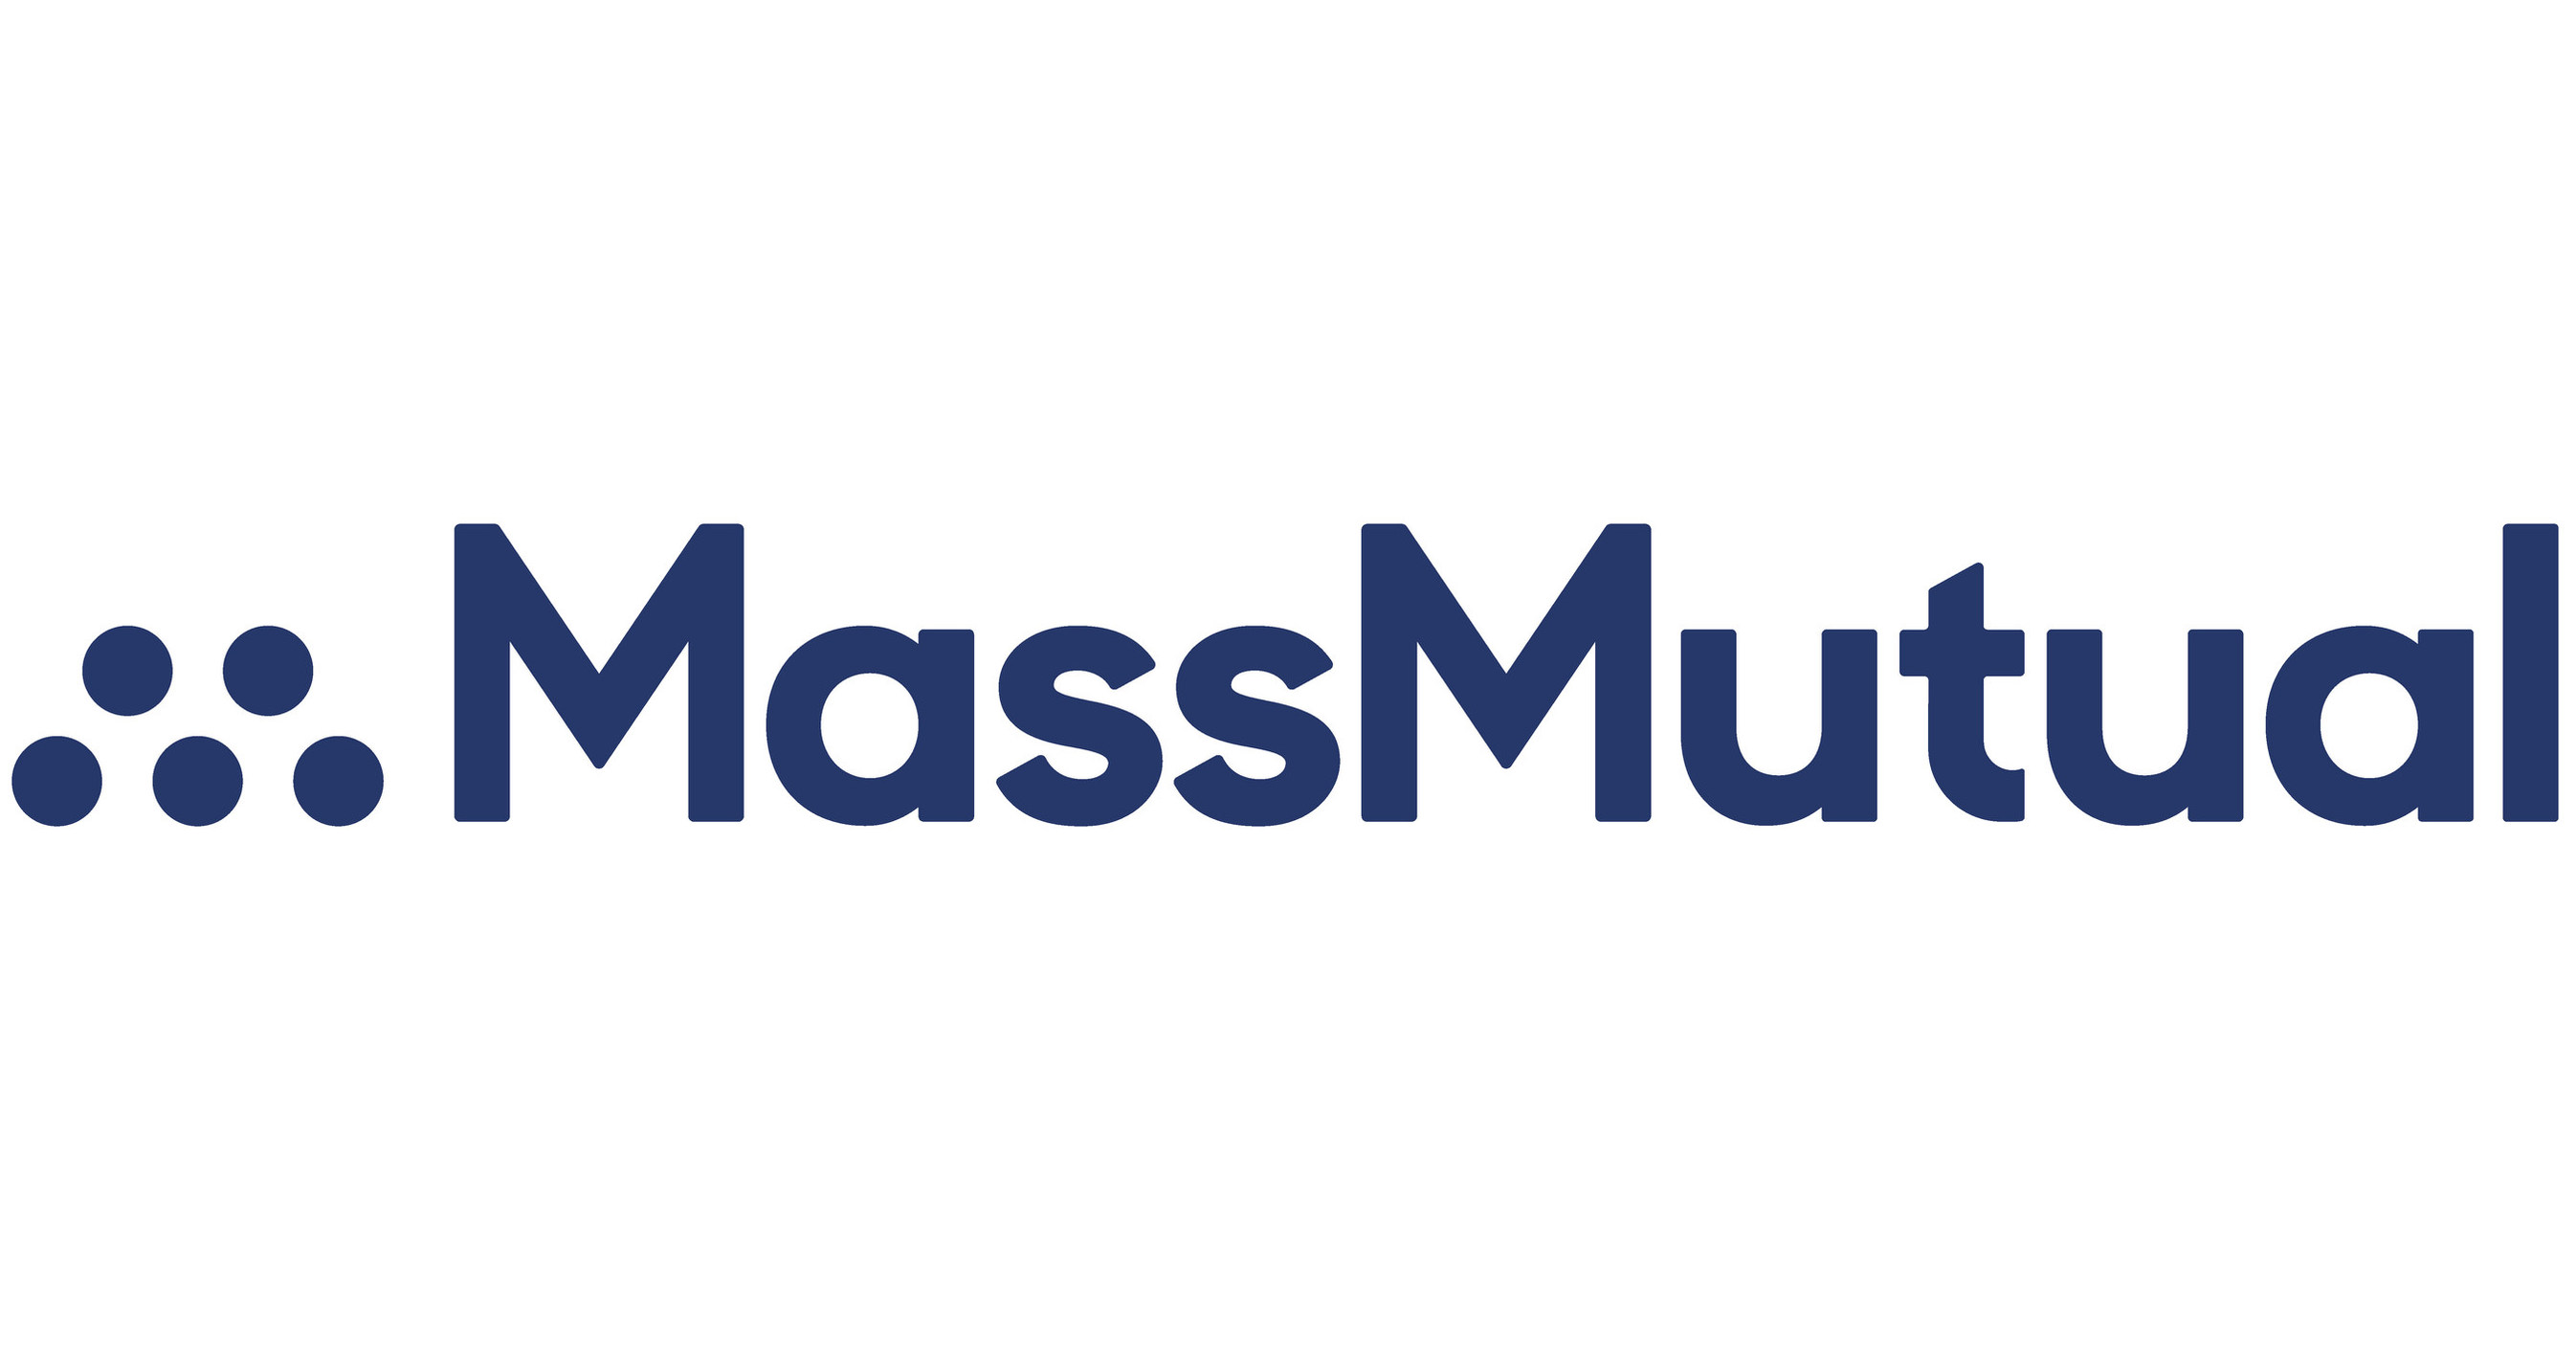 mass mutual Founded in 1851, massachusetts mutual life insurance company (massmutual)  is an american mutual life insurance company serving five million clients.